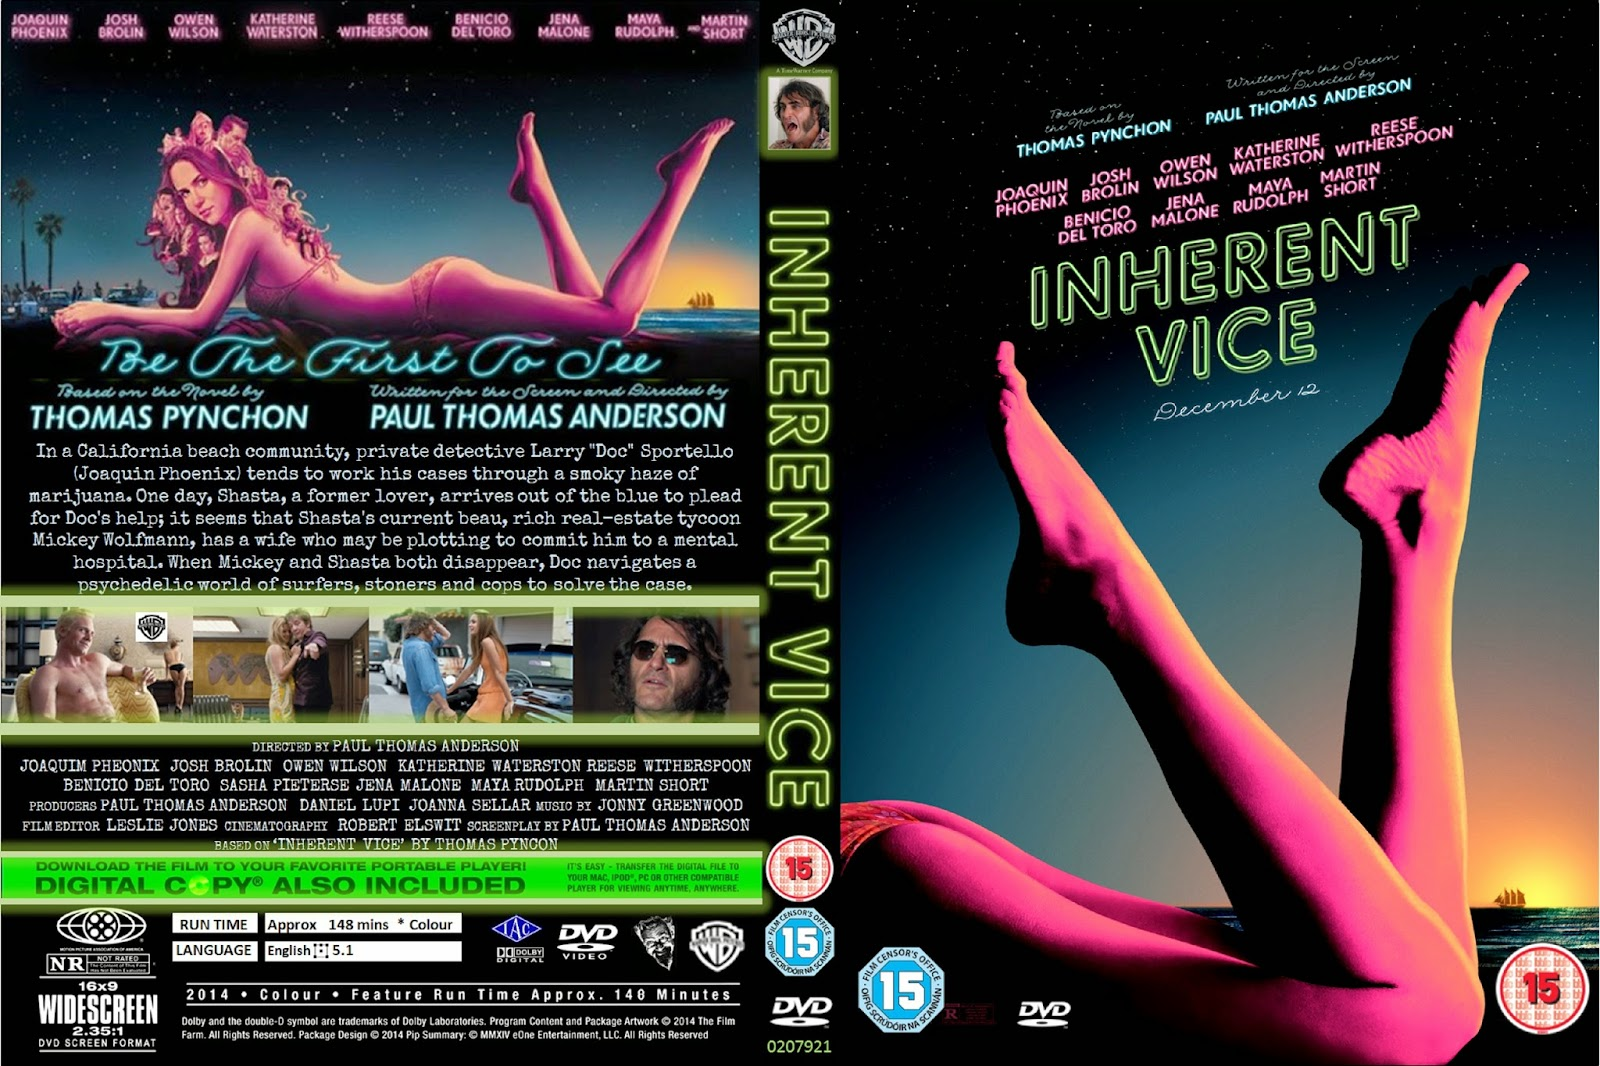 Download Vício Inerente BDRip XviD Dual Áudio getdvdcovers inherent vice 2